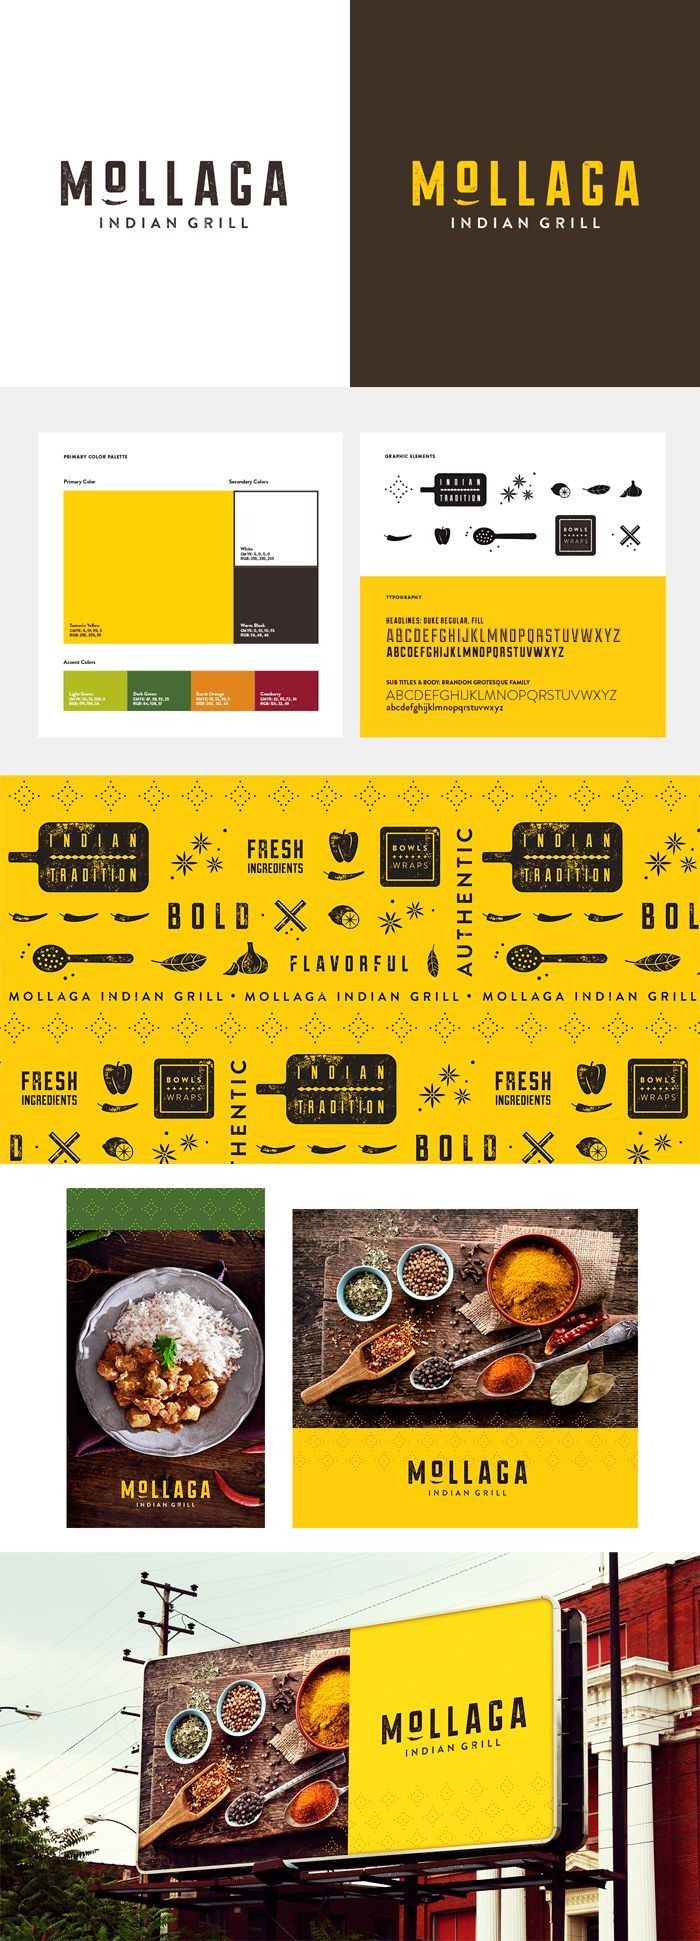 identity / mollaga / food / restaurant logo branding